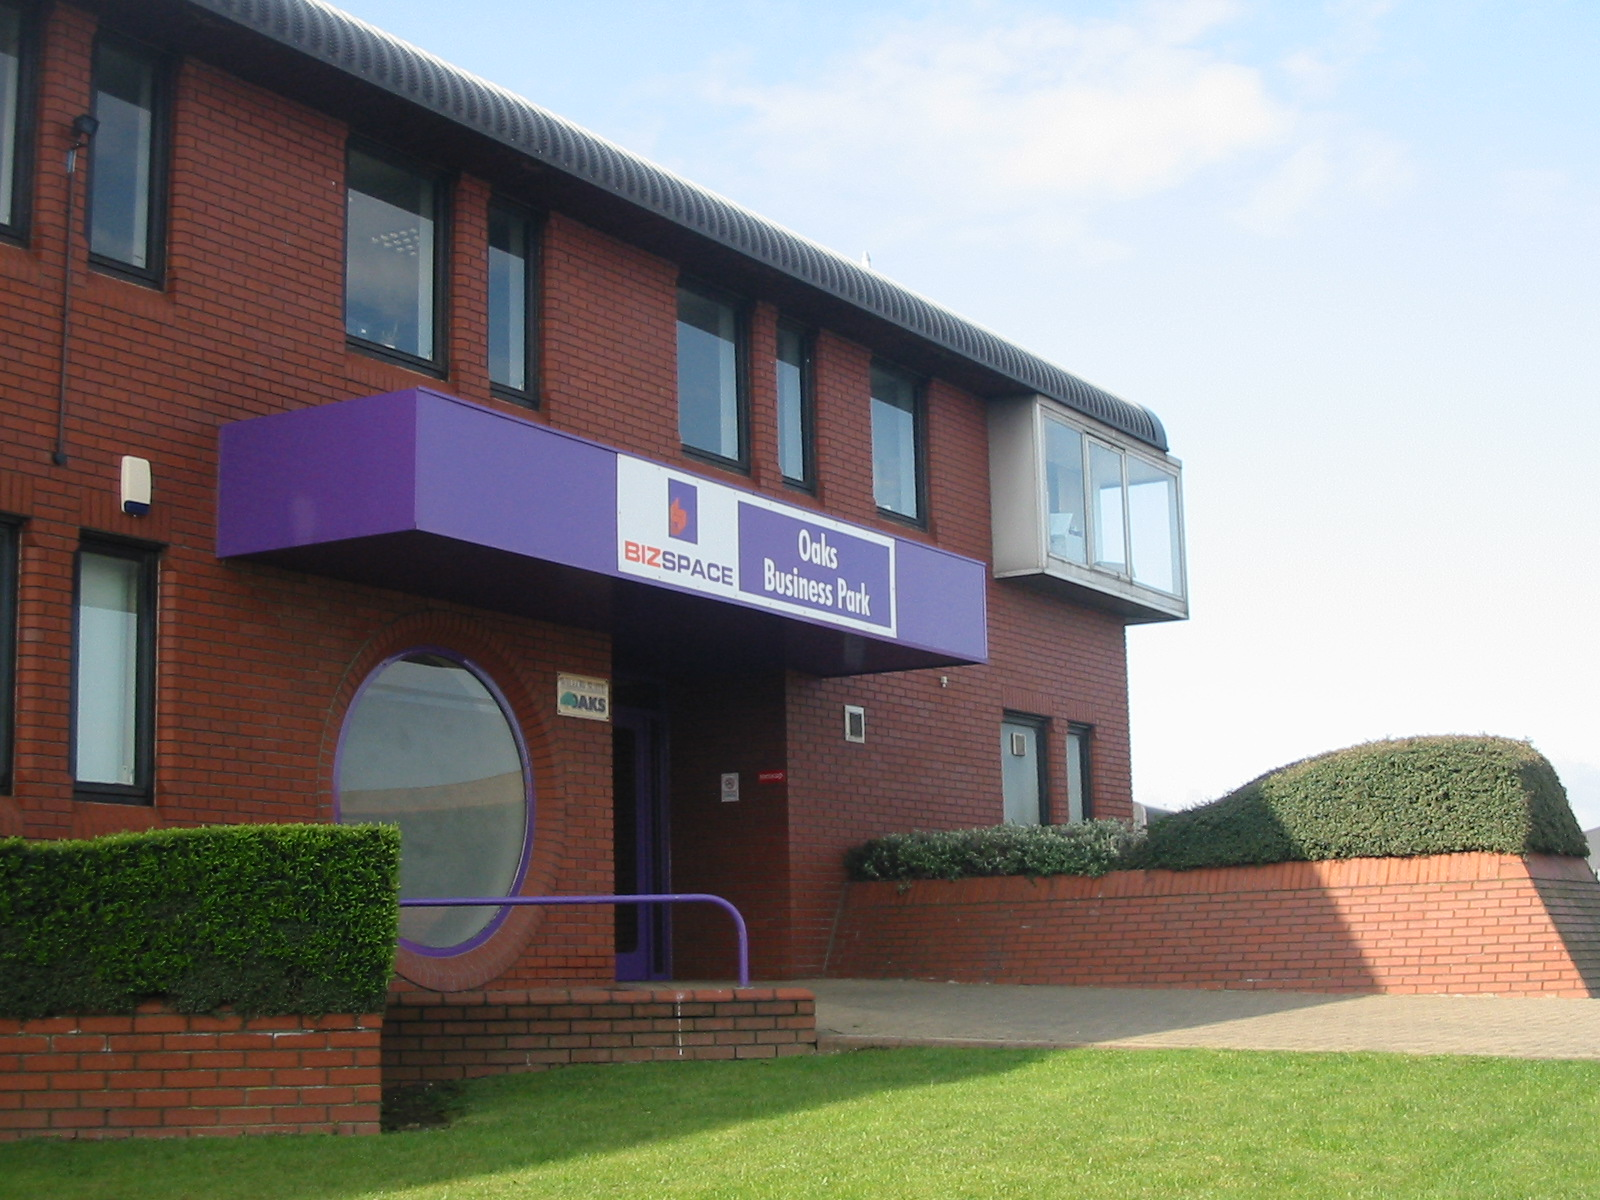 Bizspace at Oaks Business Park, Barnsley S71 1HT